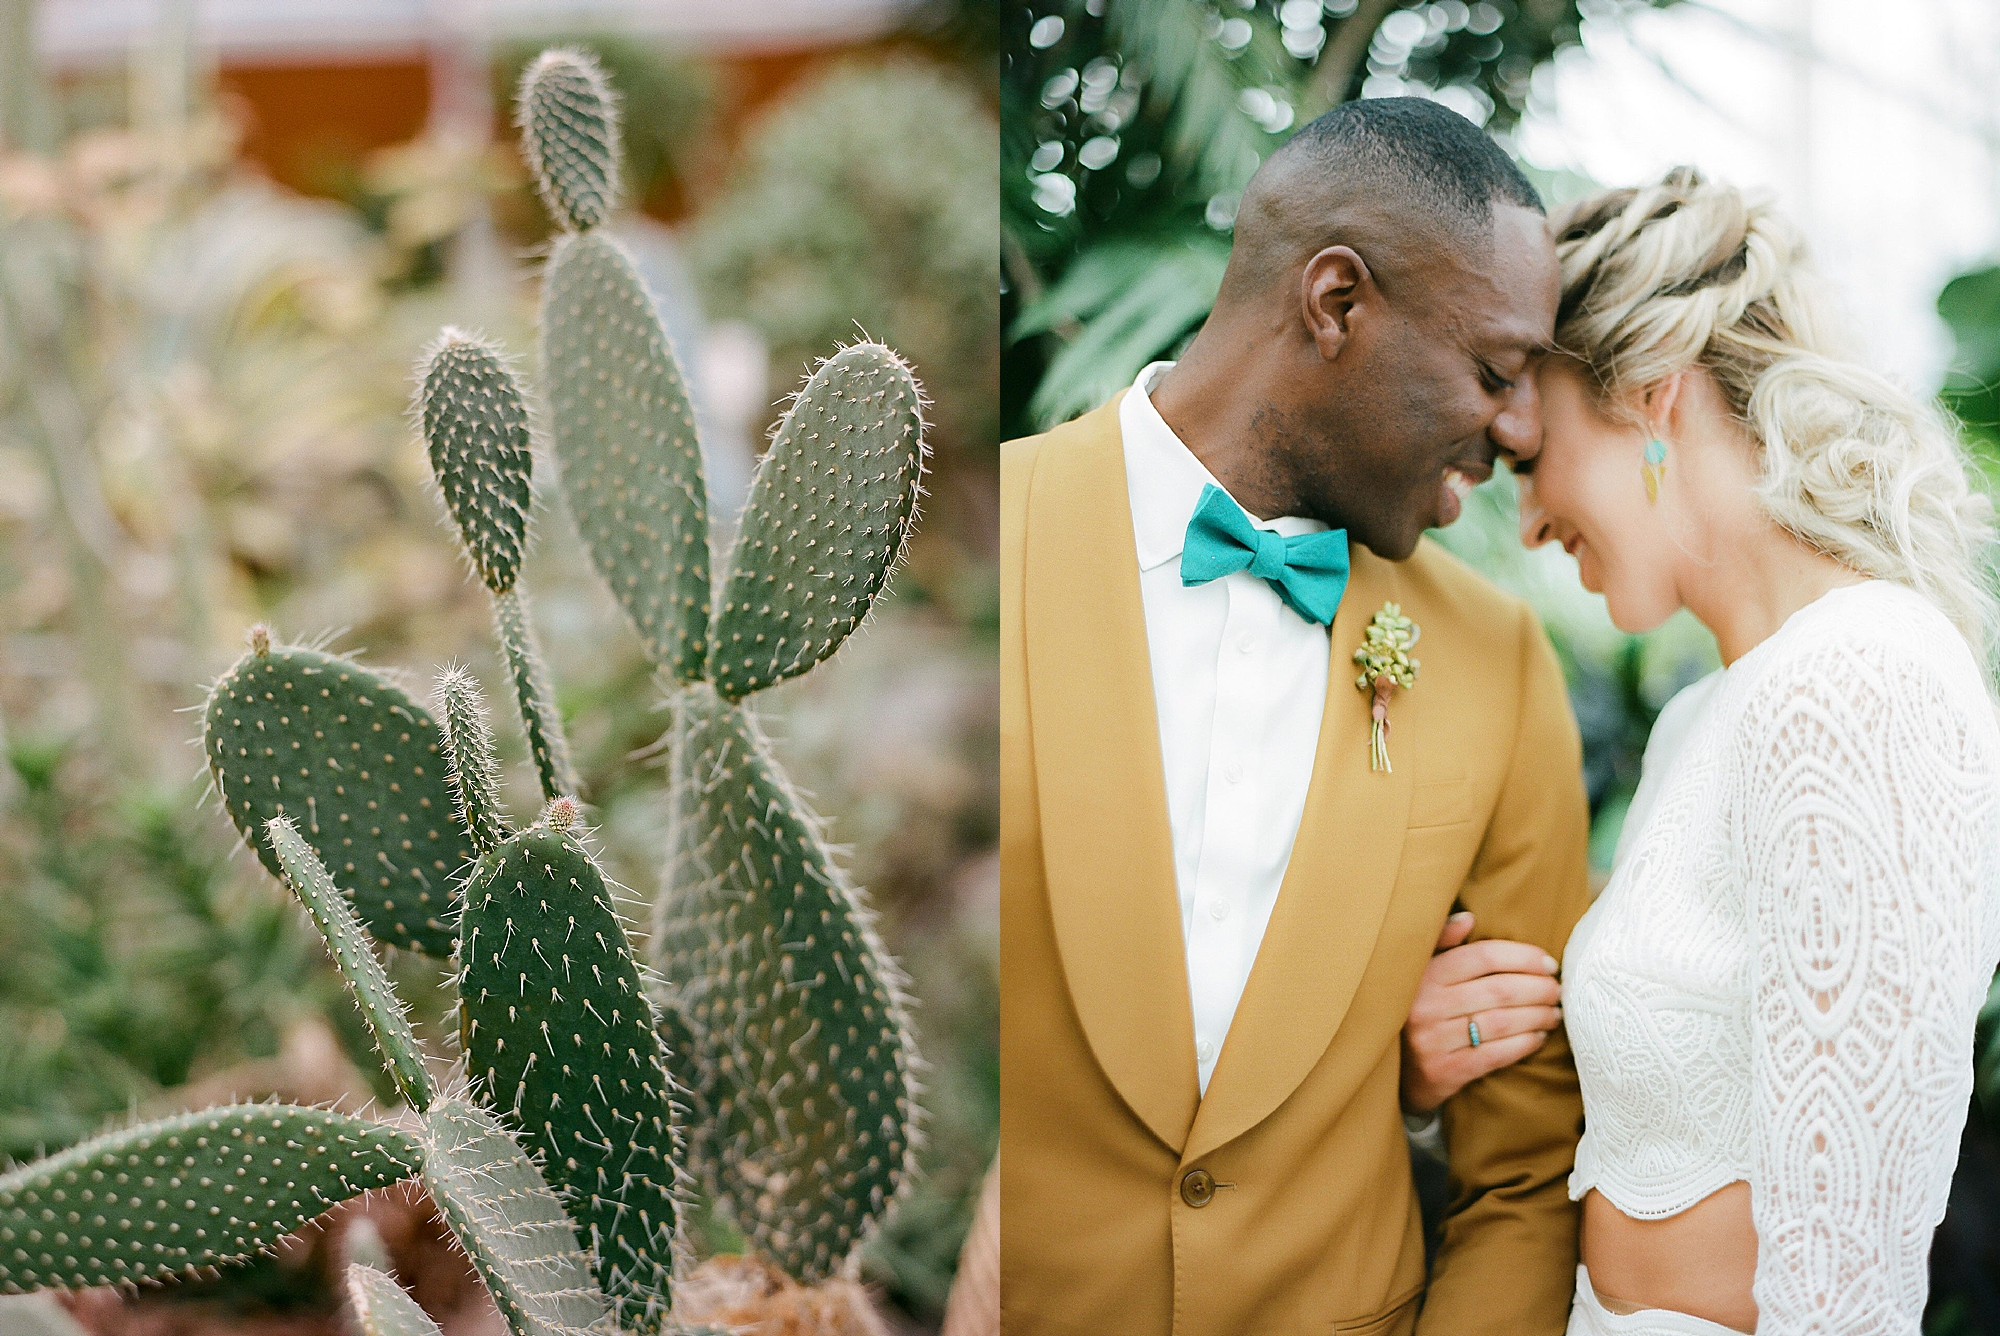 Colorful and Vibrant Wedding Photography at Fairmount Horticultural Center by Magdalena Studios 0054